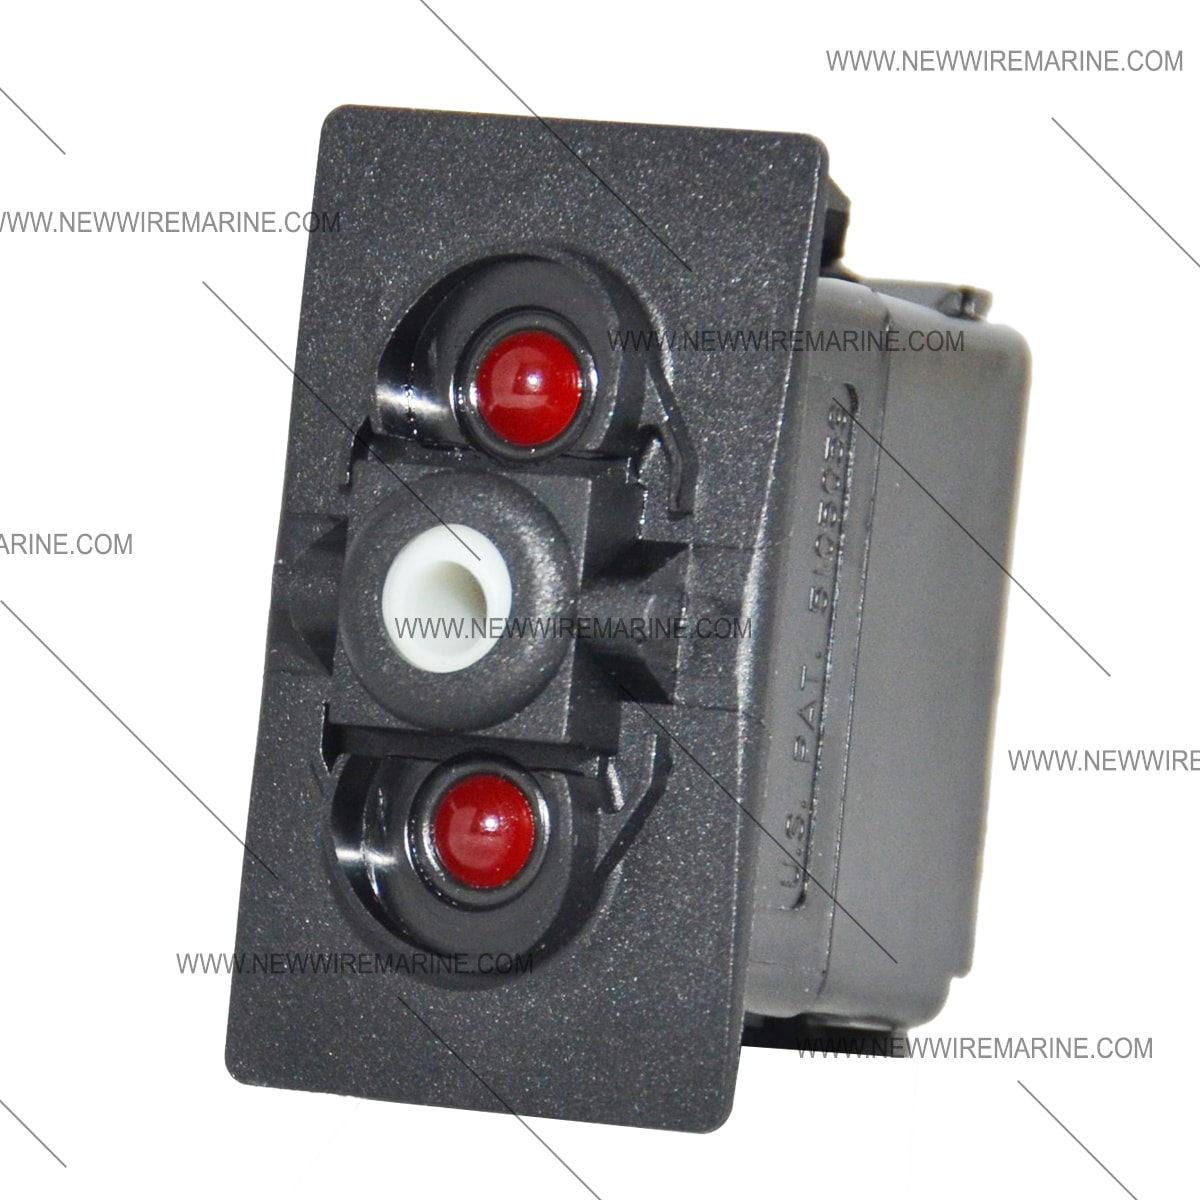 boat switch wiring diagram westinghouse 12 lead motor on-off-on backlit rocker | red led new wire marine